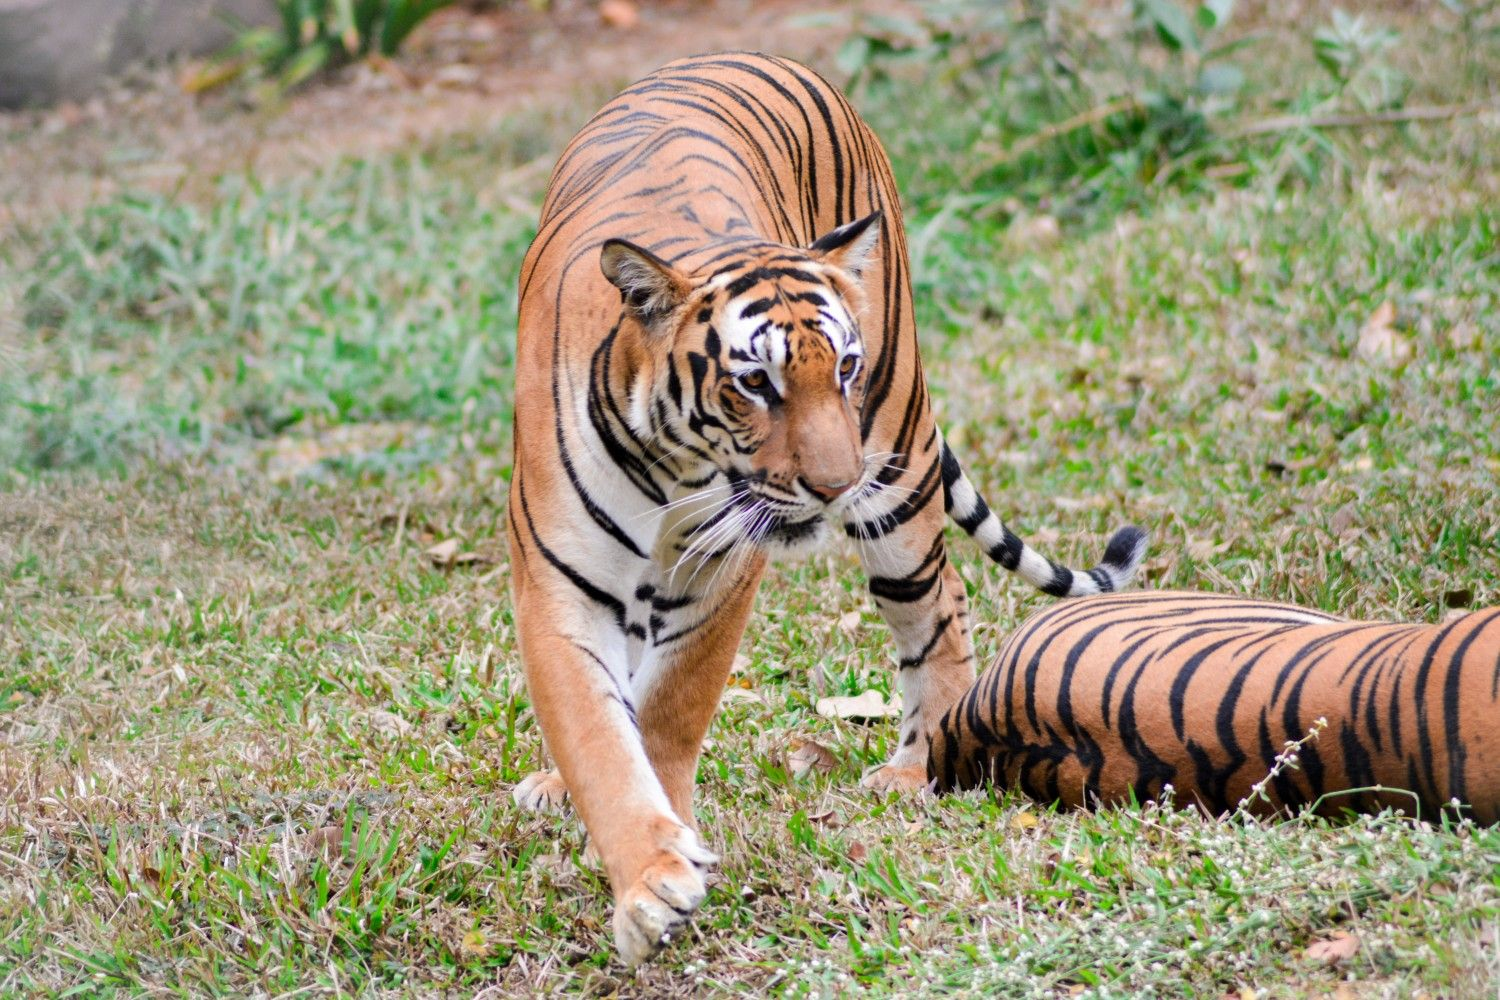 Tiger photography by me save tiger My Photography Pinterest